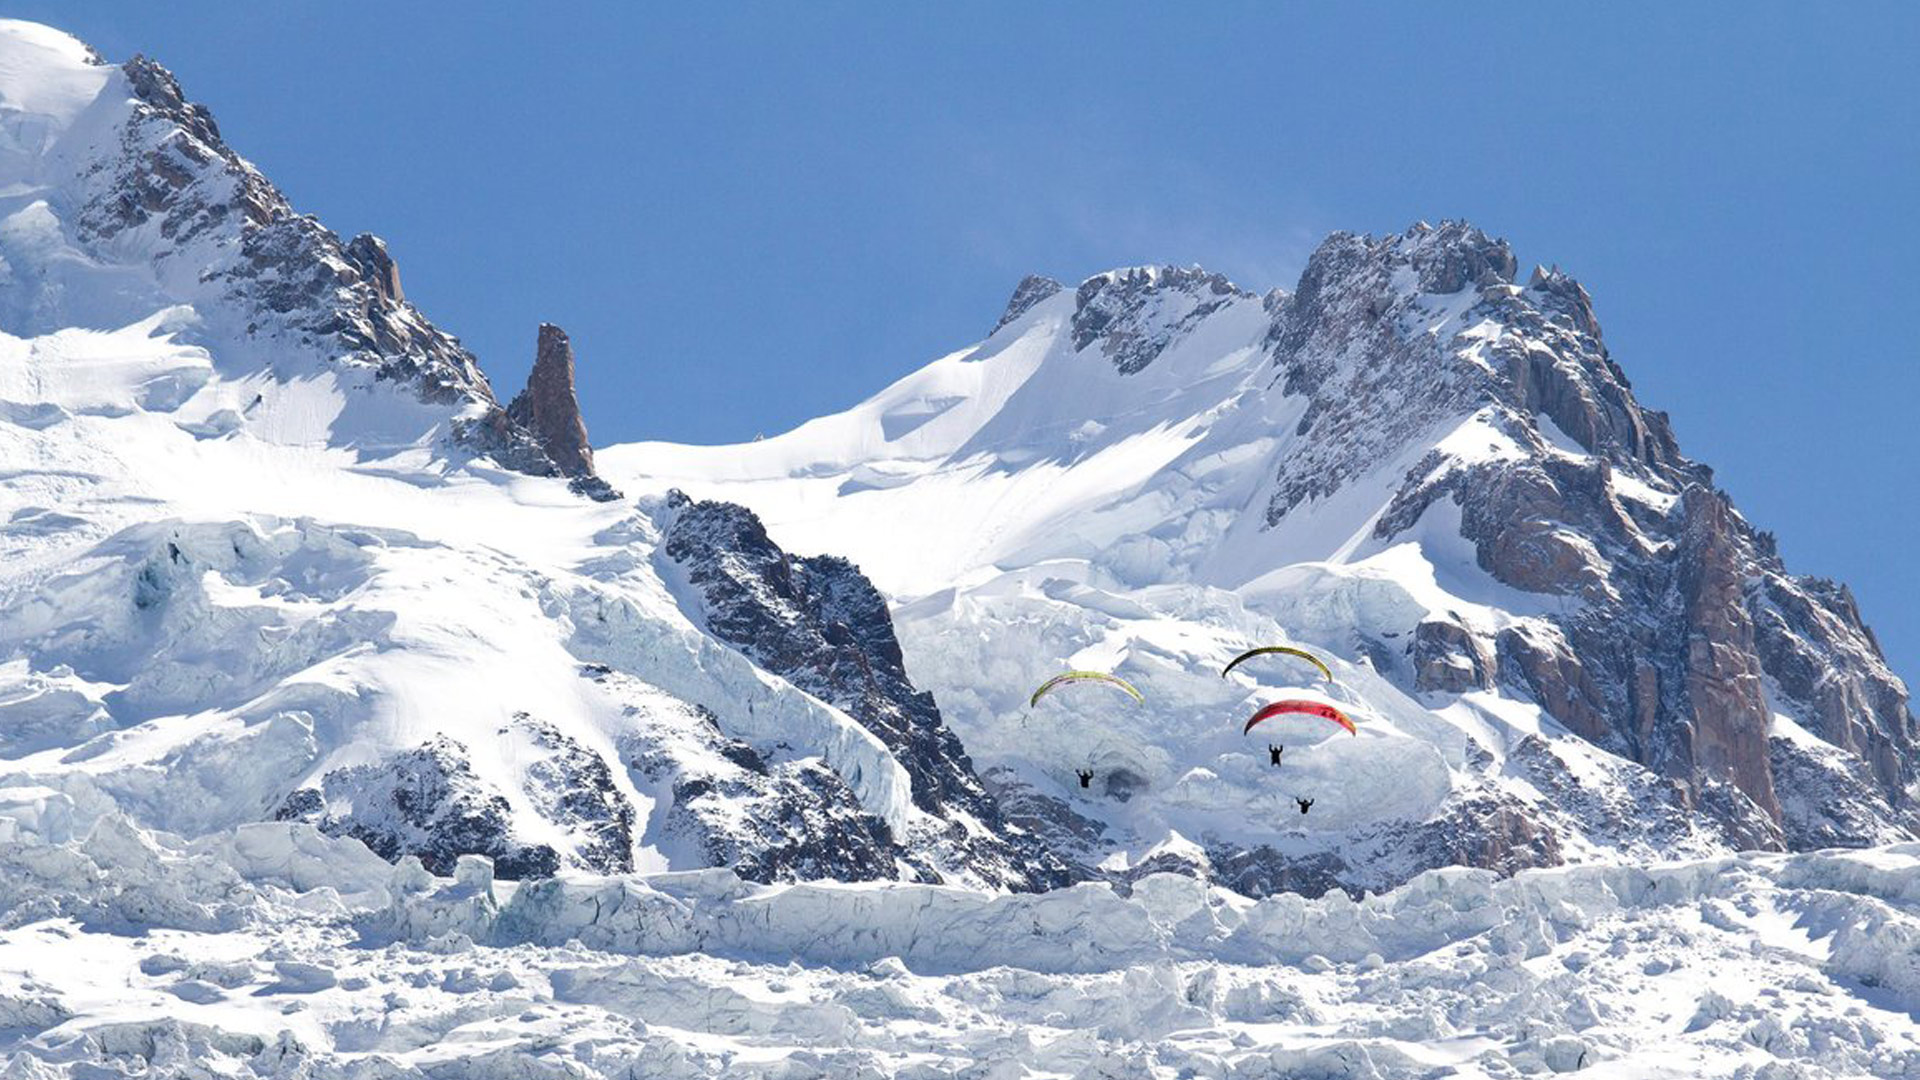 Prime-Elements-Paragliding-Mt-Blanc-Red-Bull-01